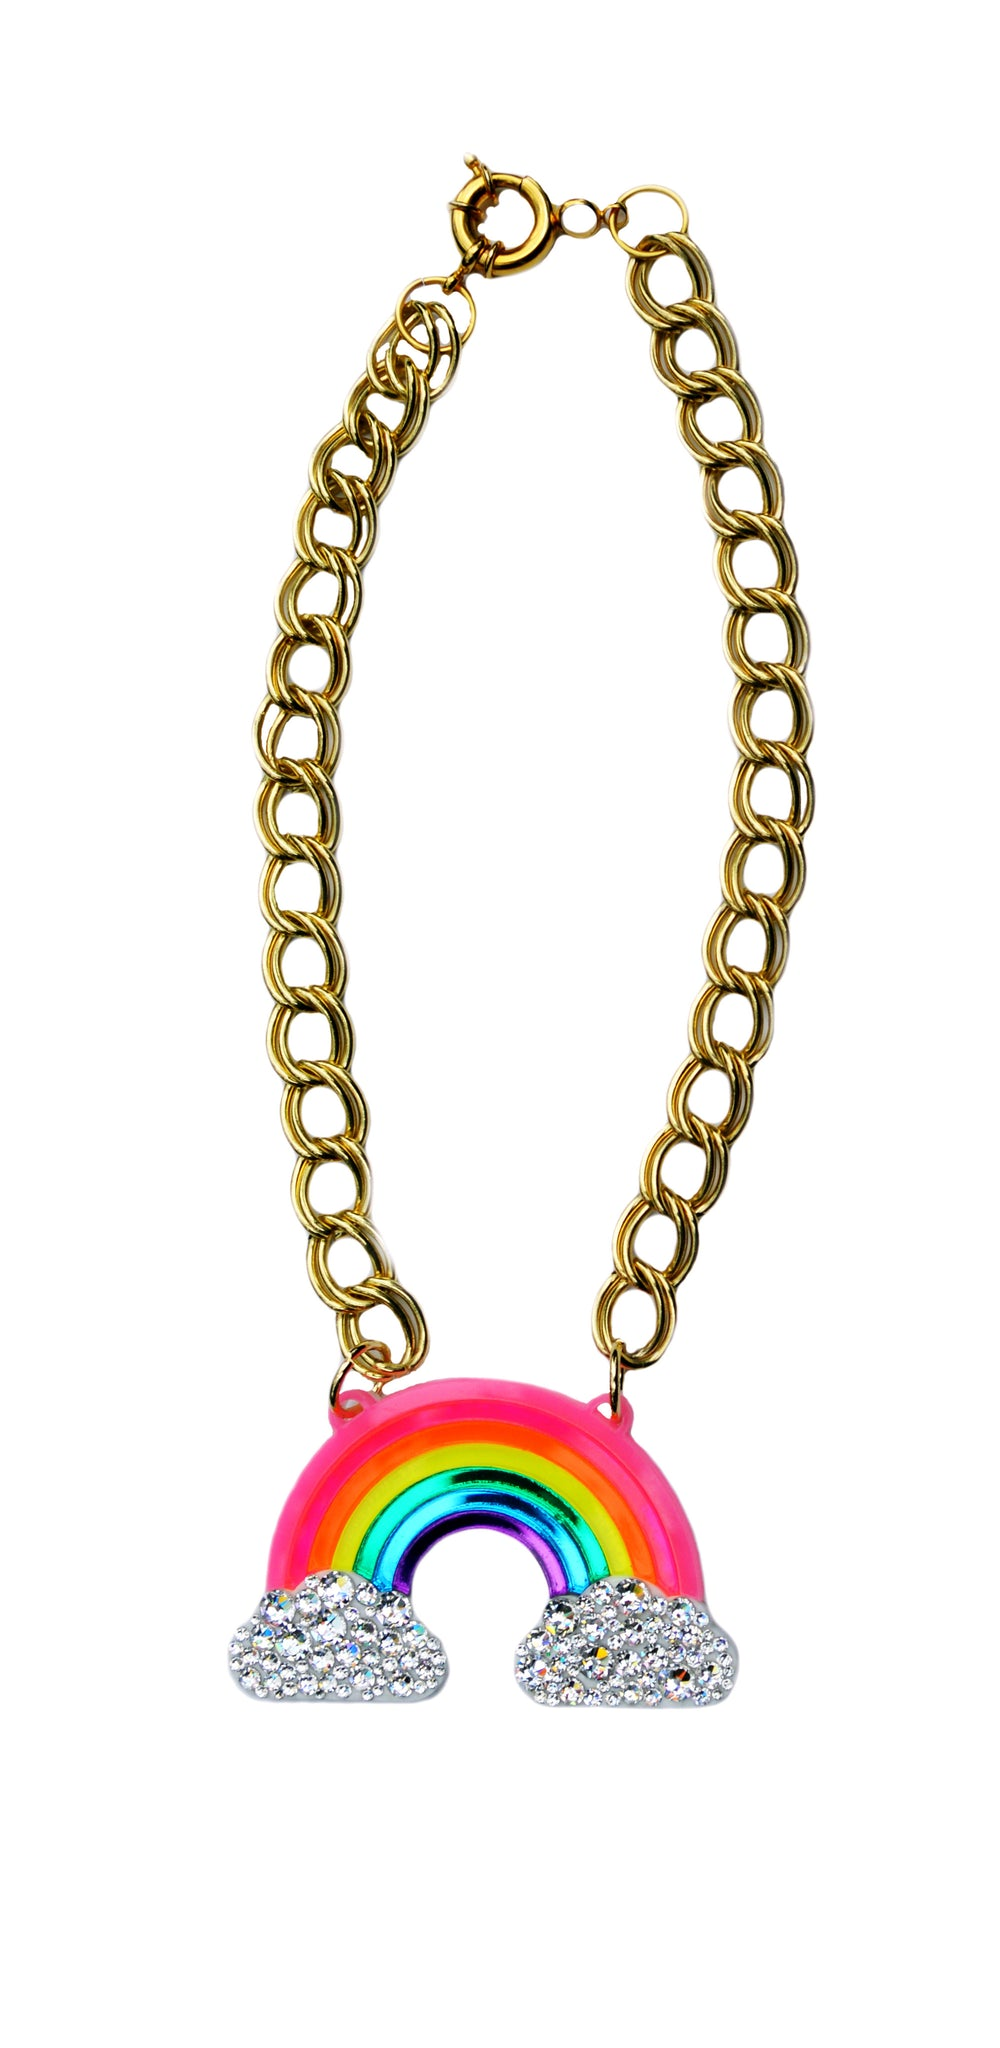 collectibles with cable women designs sapphires products pink rainbow necklace main and yellow gold tsavorite new in pdp